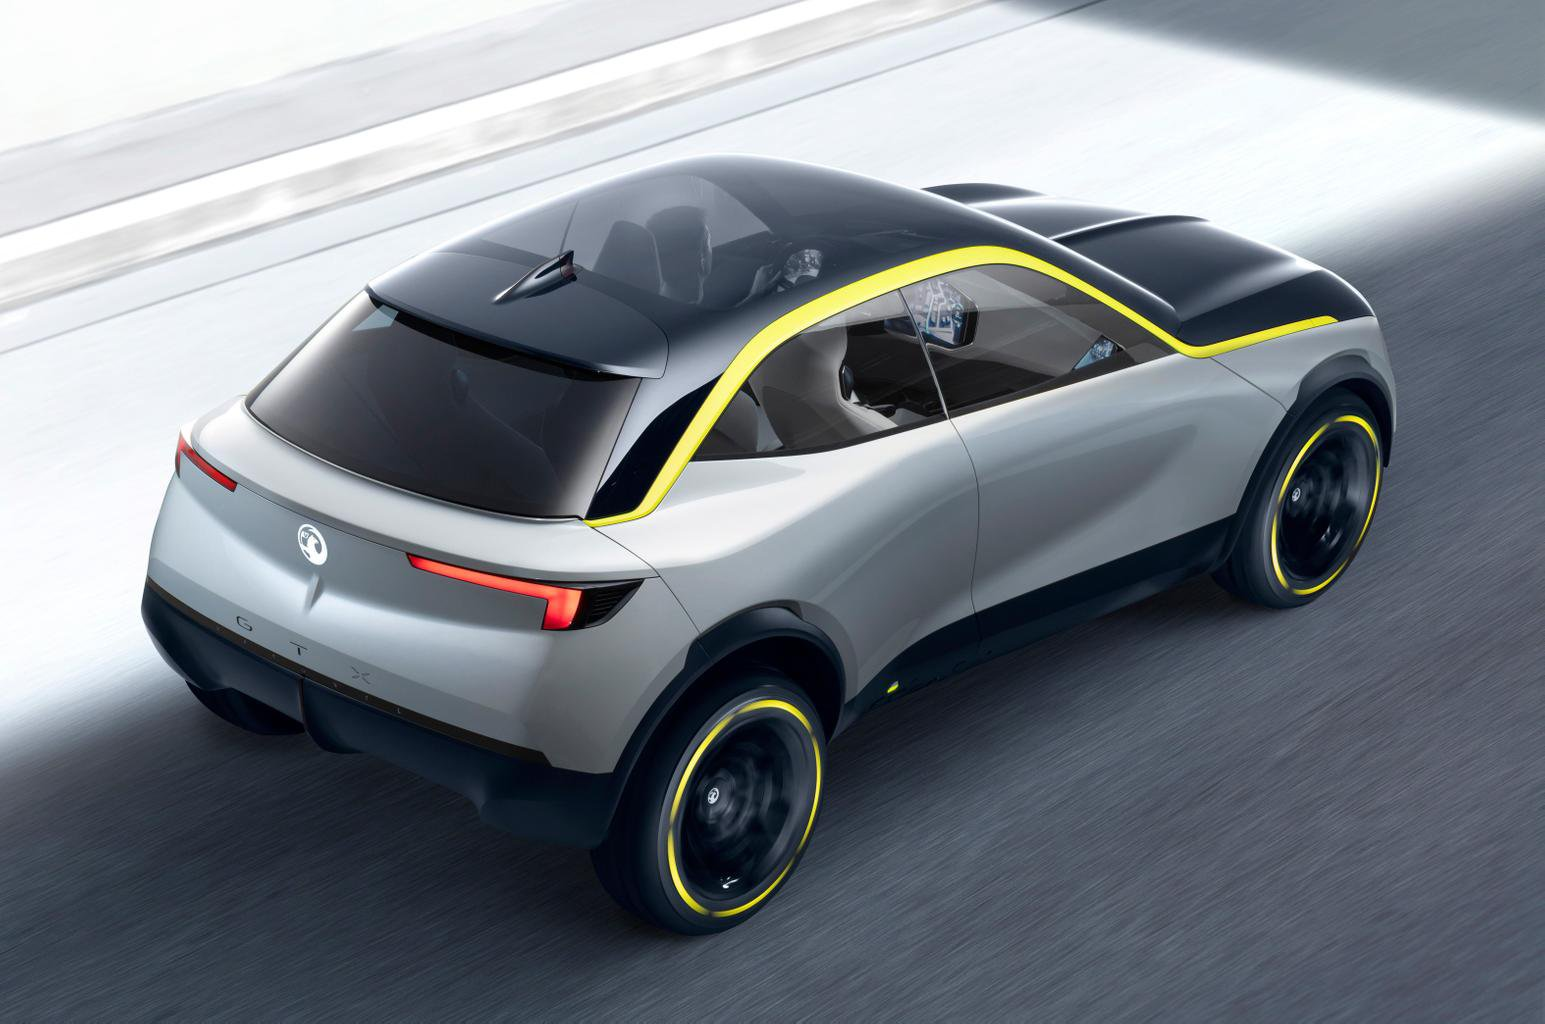 New Vauxhall GT X revealed